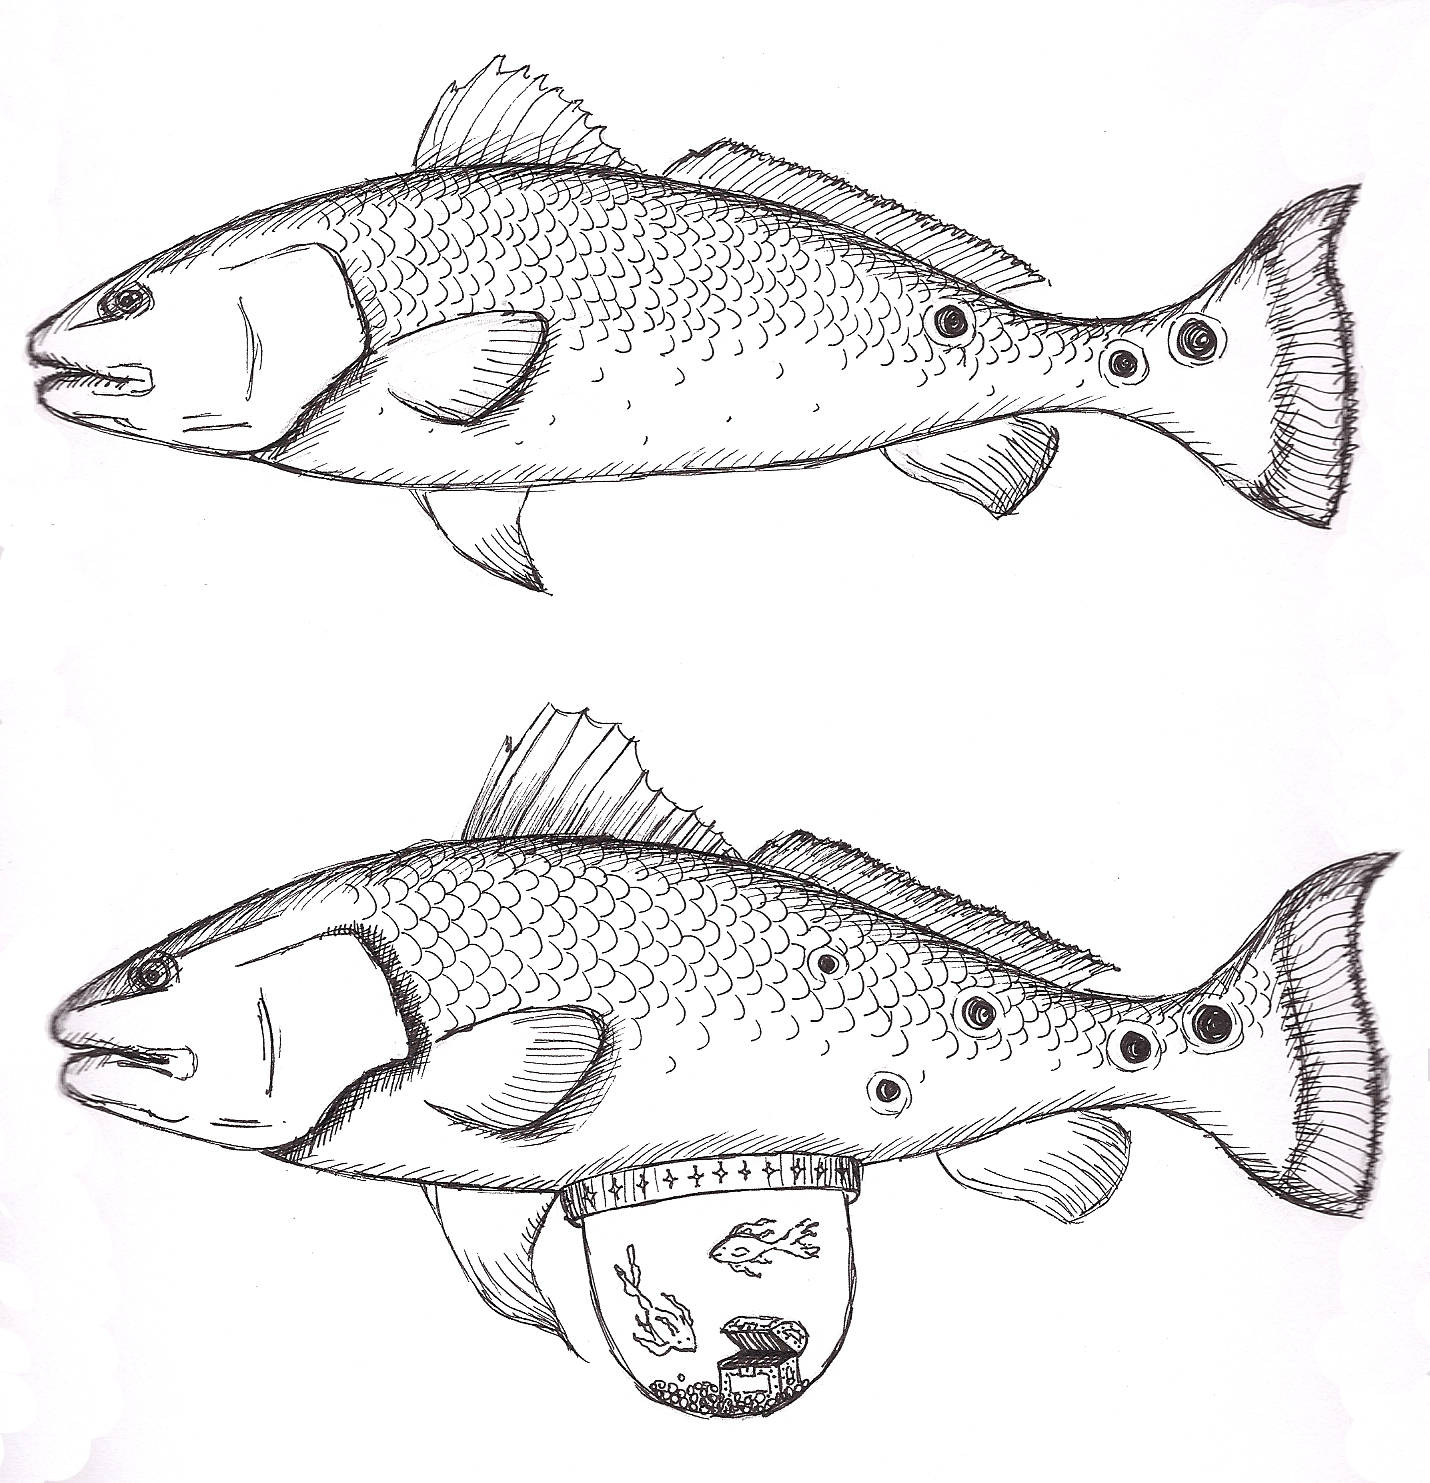 Redfish Art Redfish tank sketchesRedfish Drawing